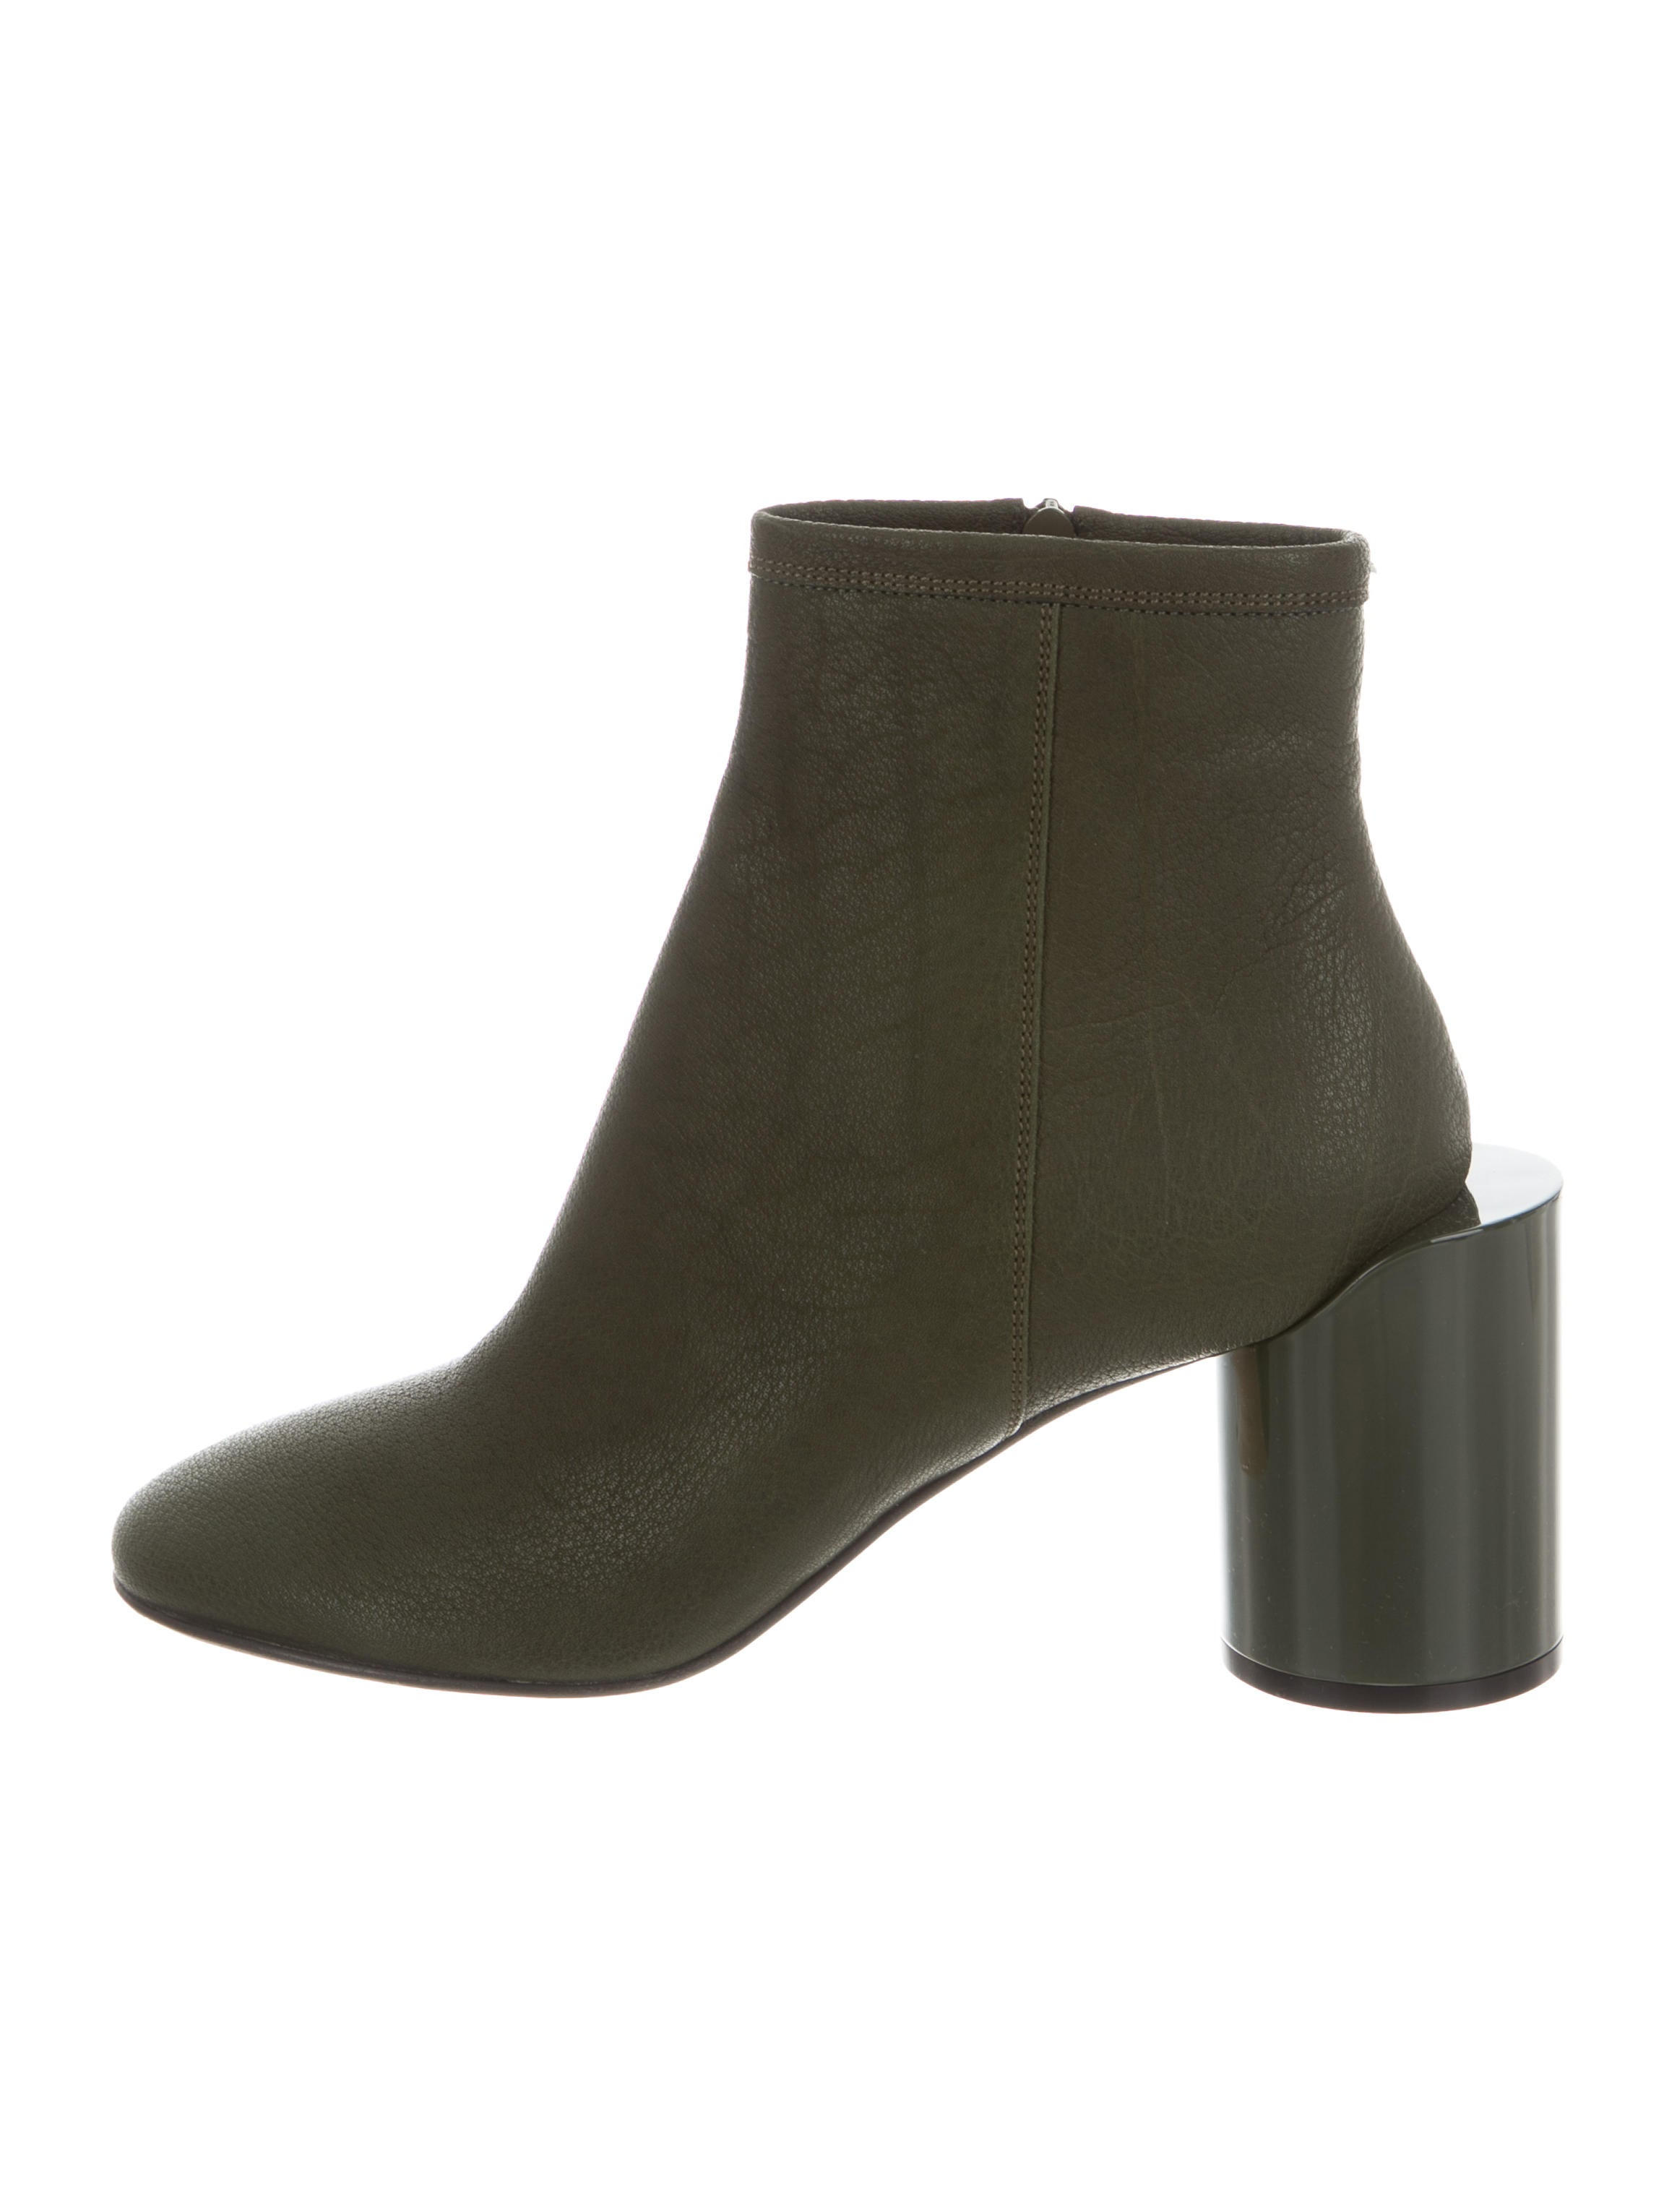 cheap sale get to buy Maison Margiela Round-Toe Ankle Boots w/ Tags buy cheap footlocker pictures for sale O82CrwNm